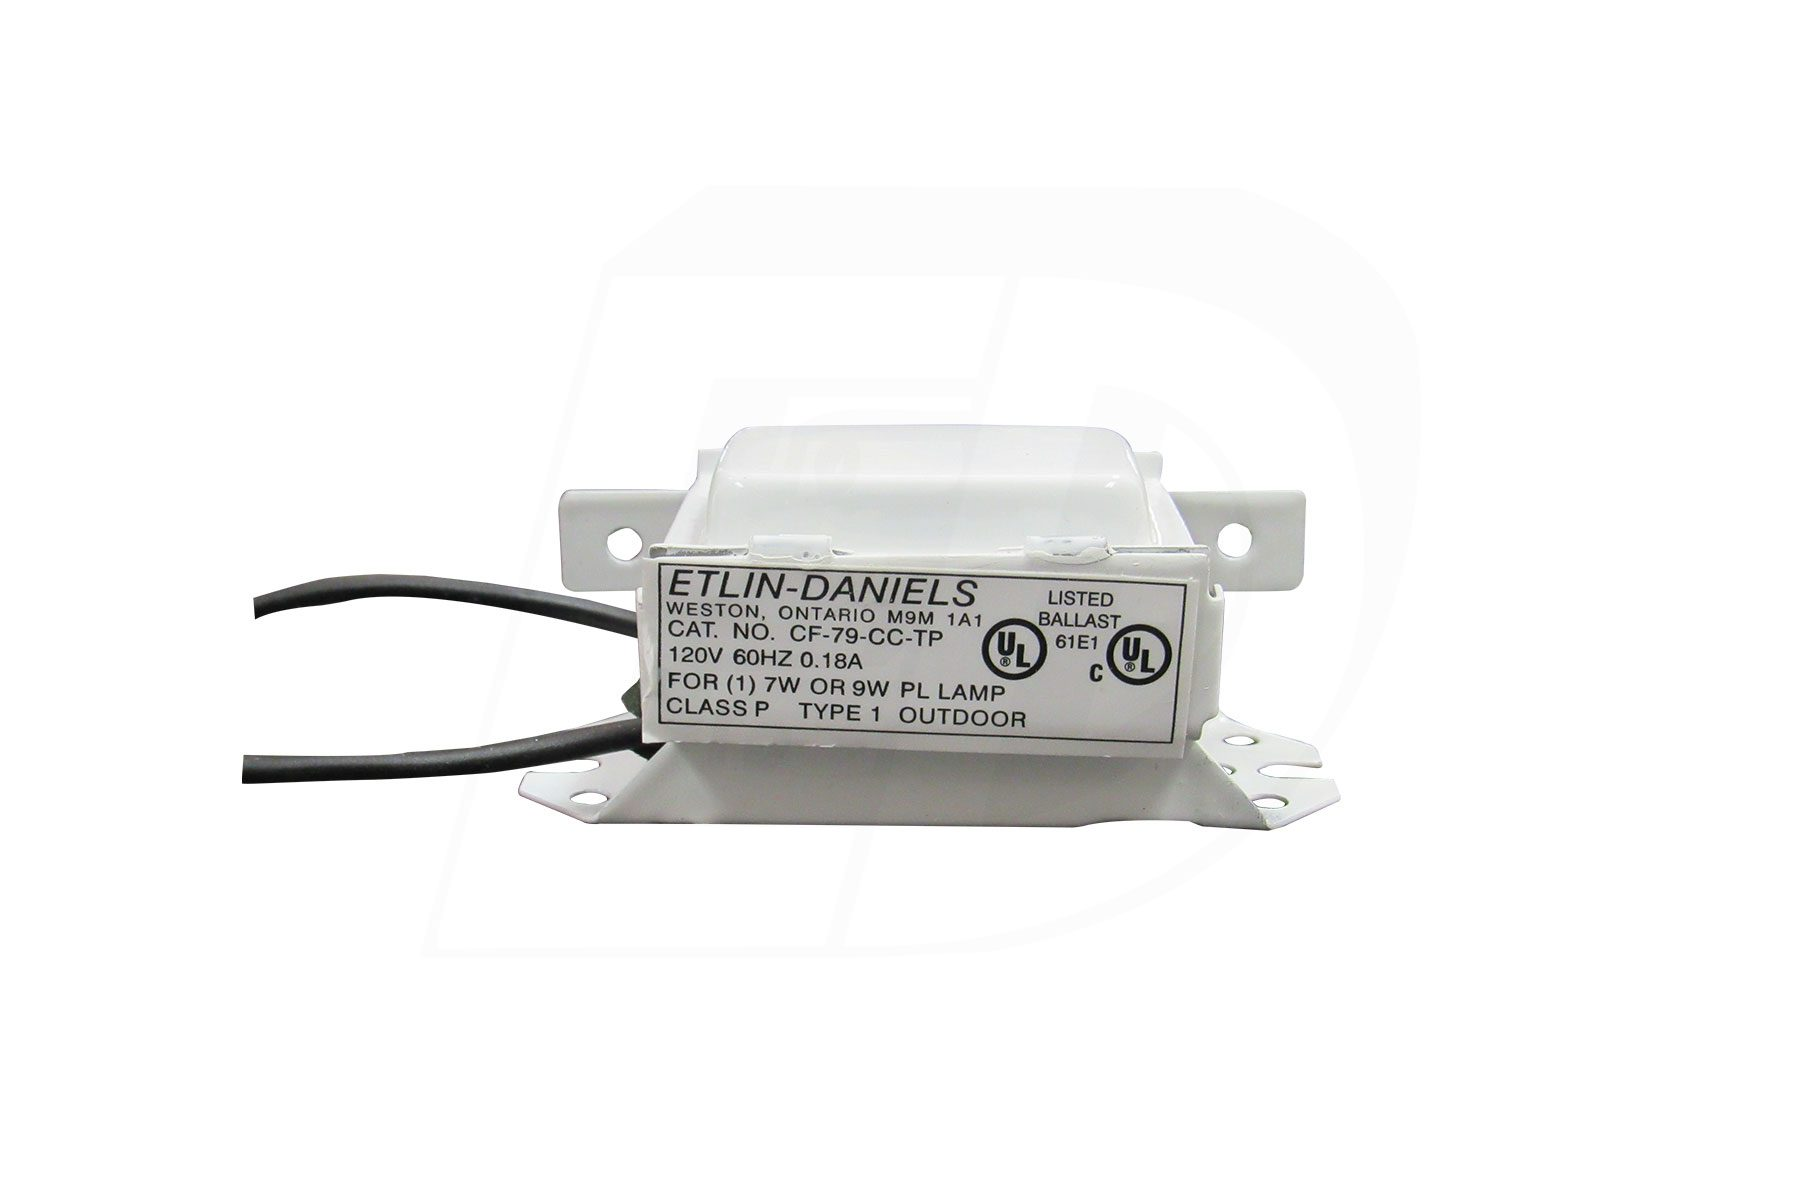 7W and 9W CFL Magnetic Ballast